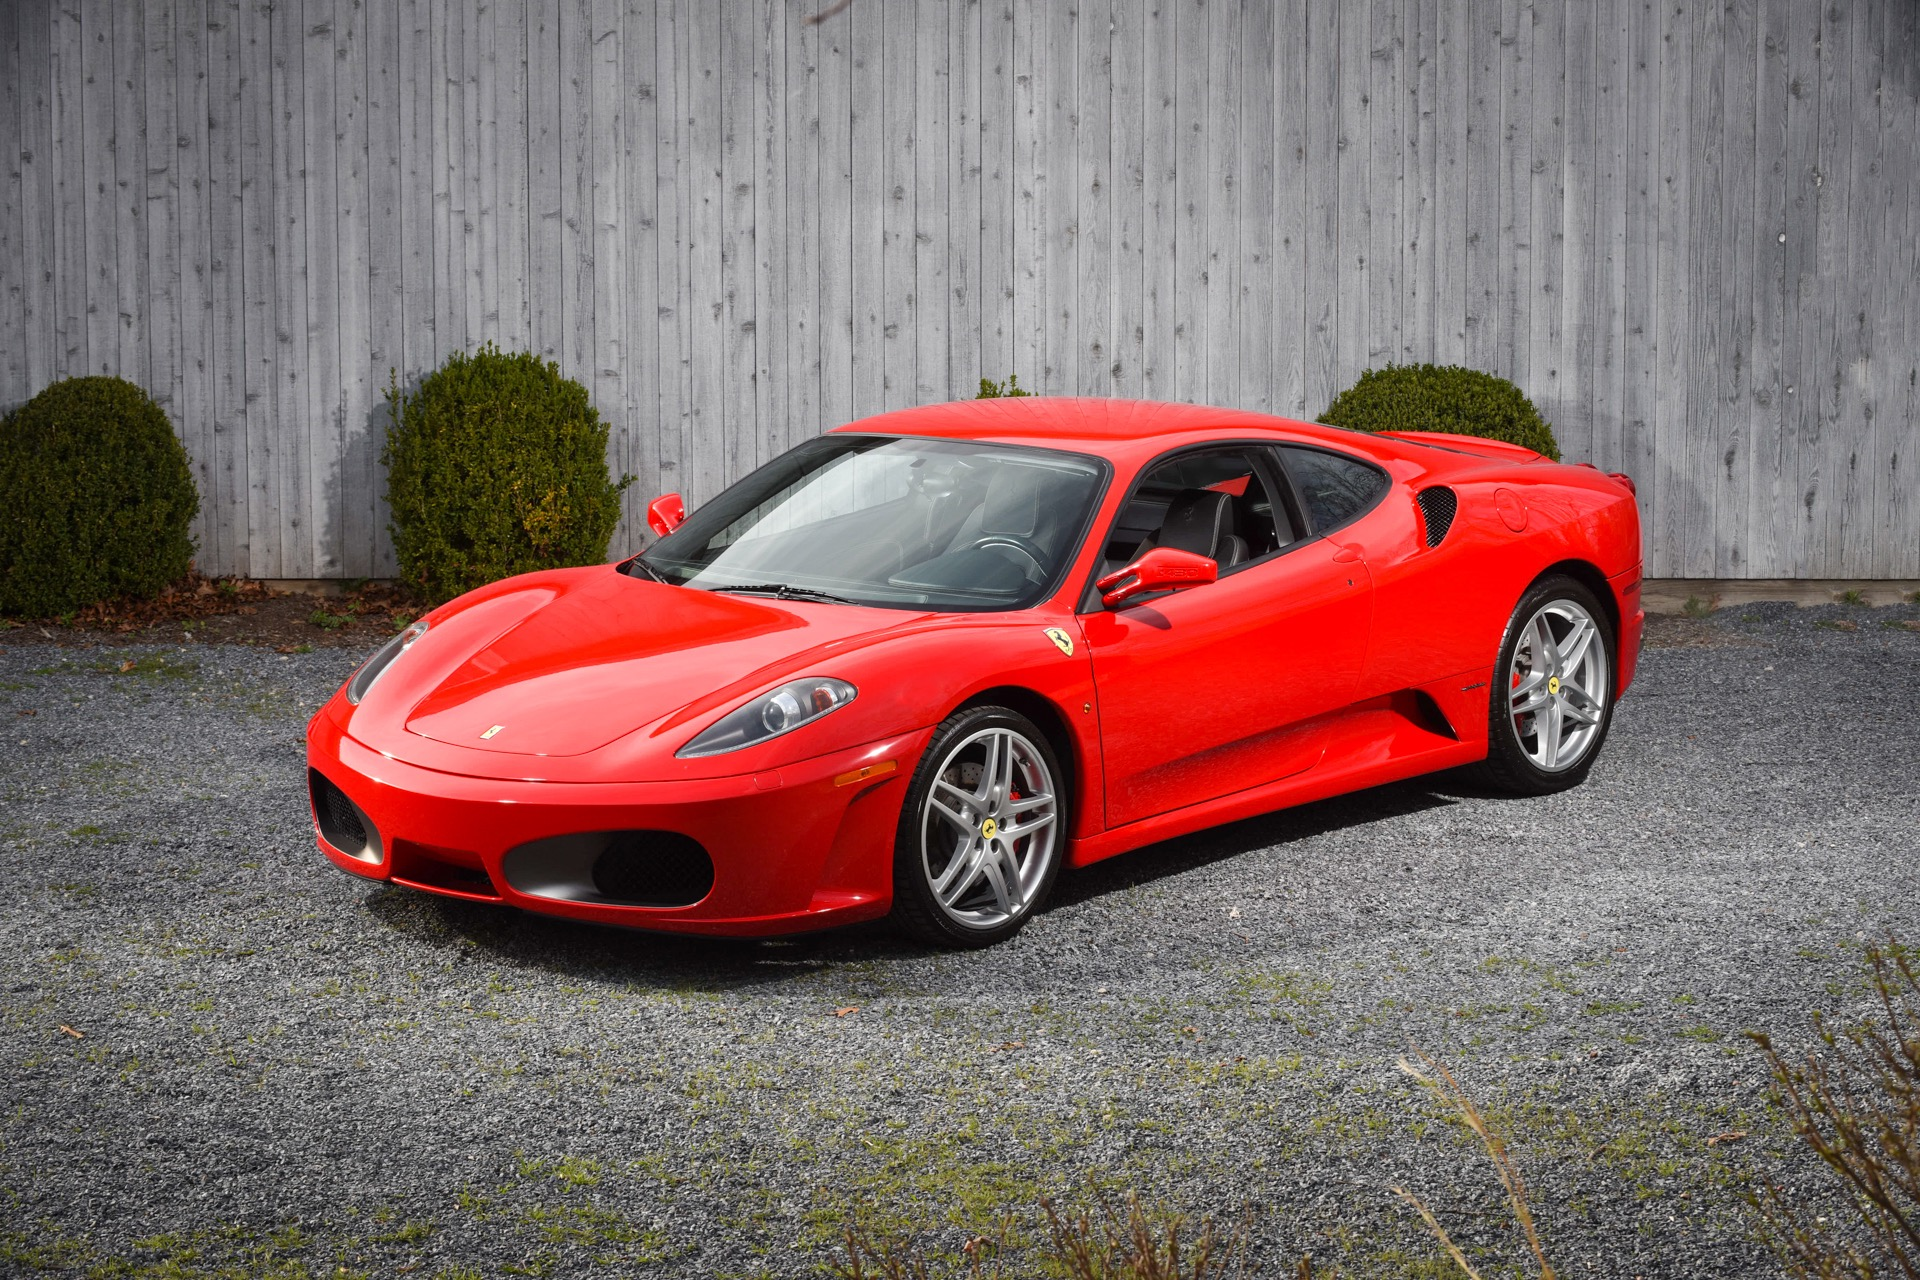 2005 Ferrari F430 Coupe 6 Speed Manual Stock 9 For Sale Near Glen Cove Ny Ny Ferrari Dealer